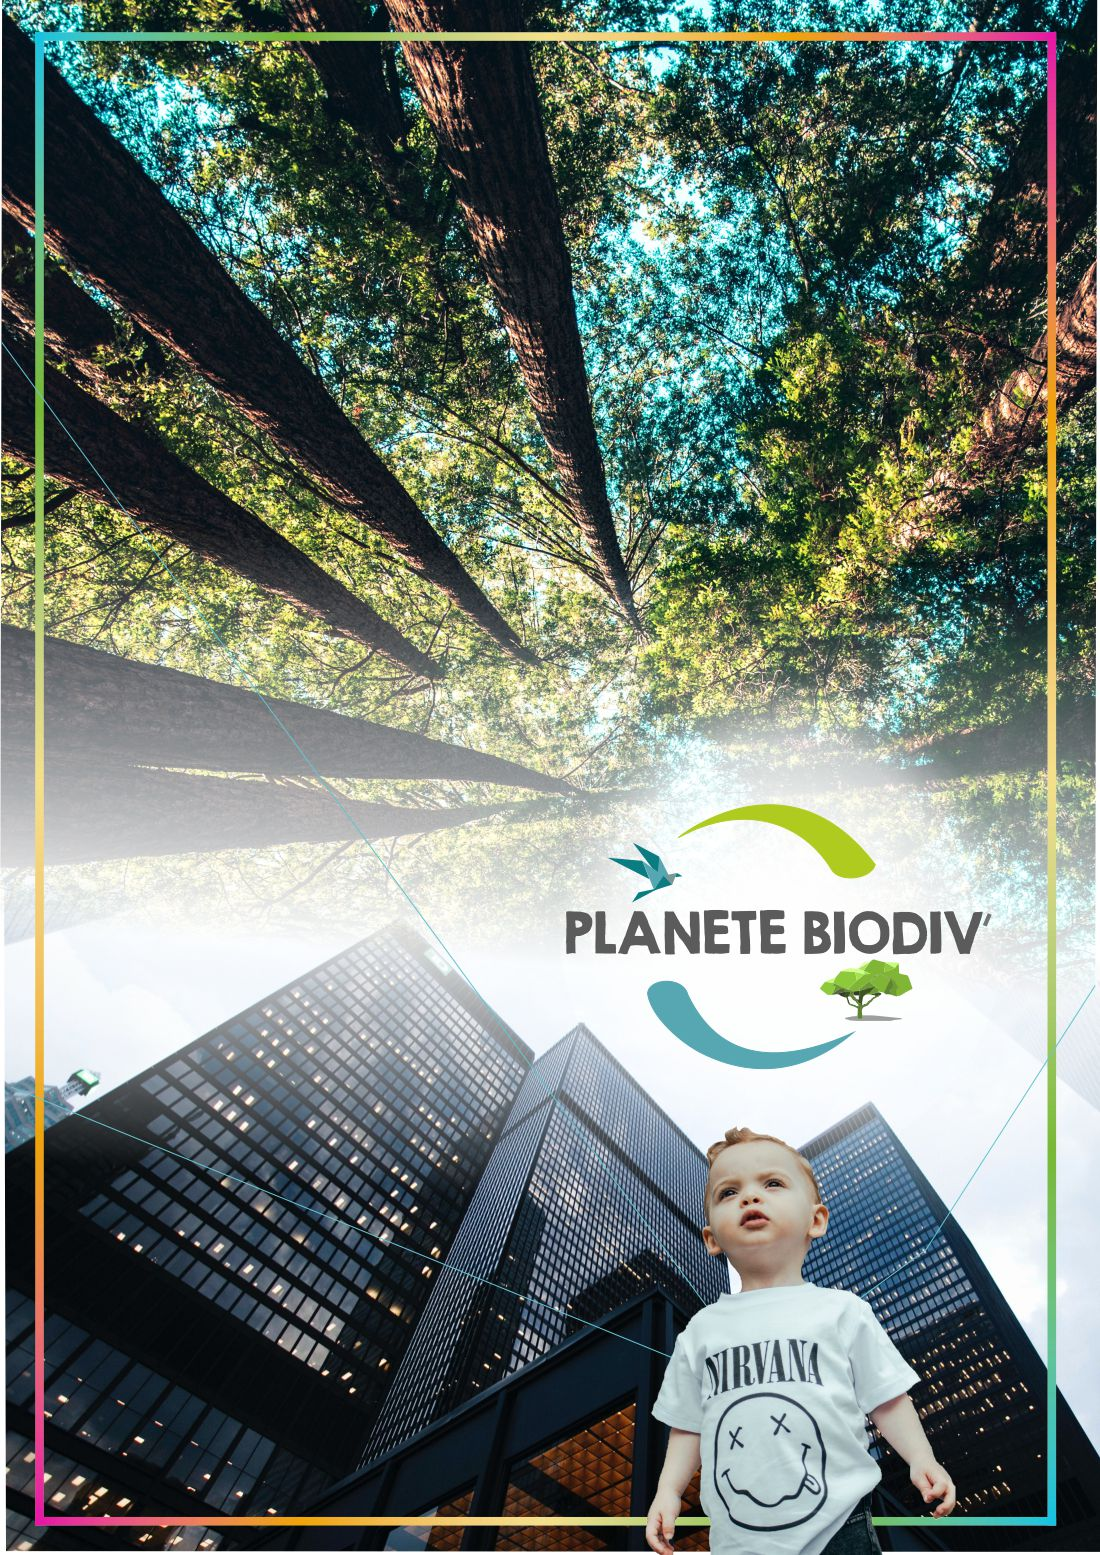 https://the-place-to-be.fr/wp-content/uploads/2020/01/salon-planete_biodiv-2020-parc-chanot-marseille-fevrier.jpg